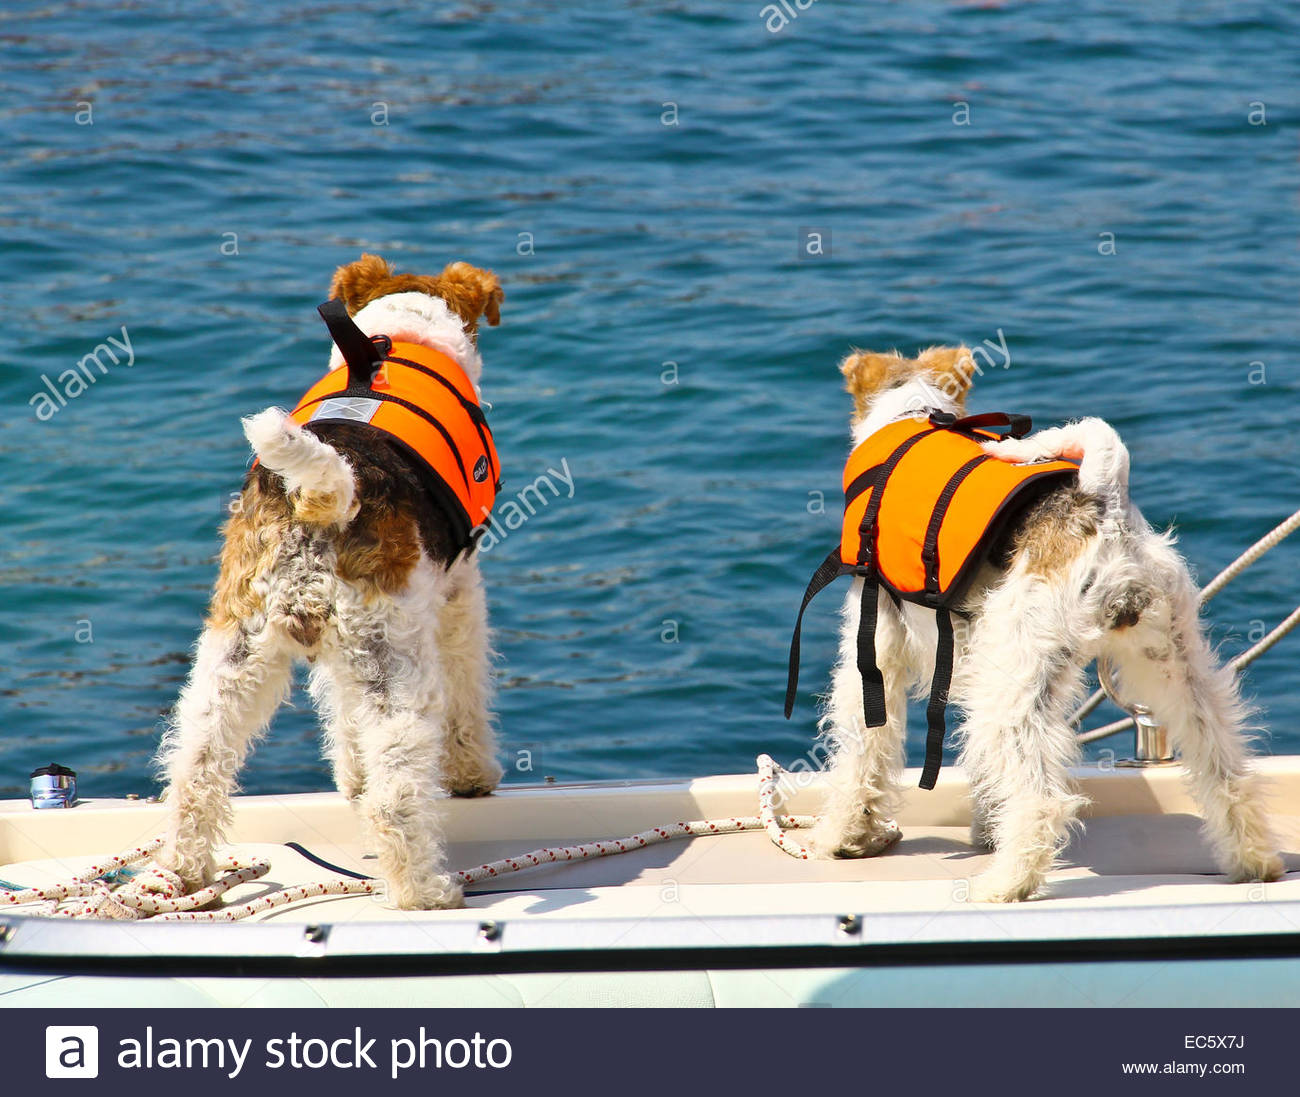 Dogs On Board Stock Photos & Dogs On Board Stock Images - Alamy